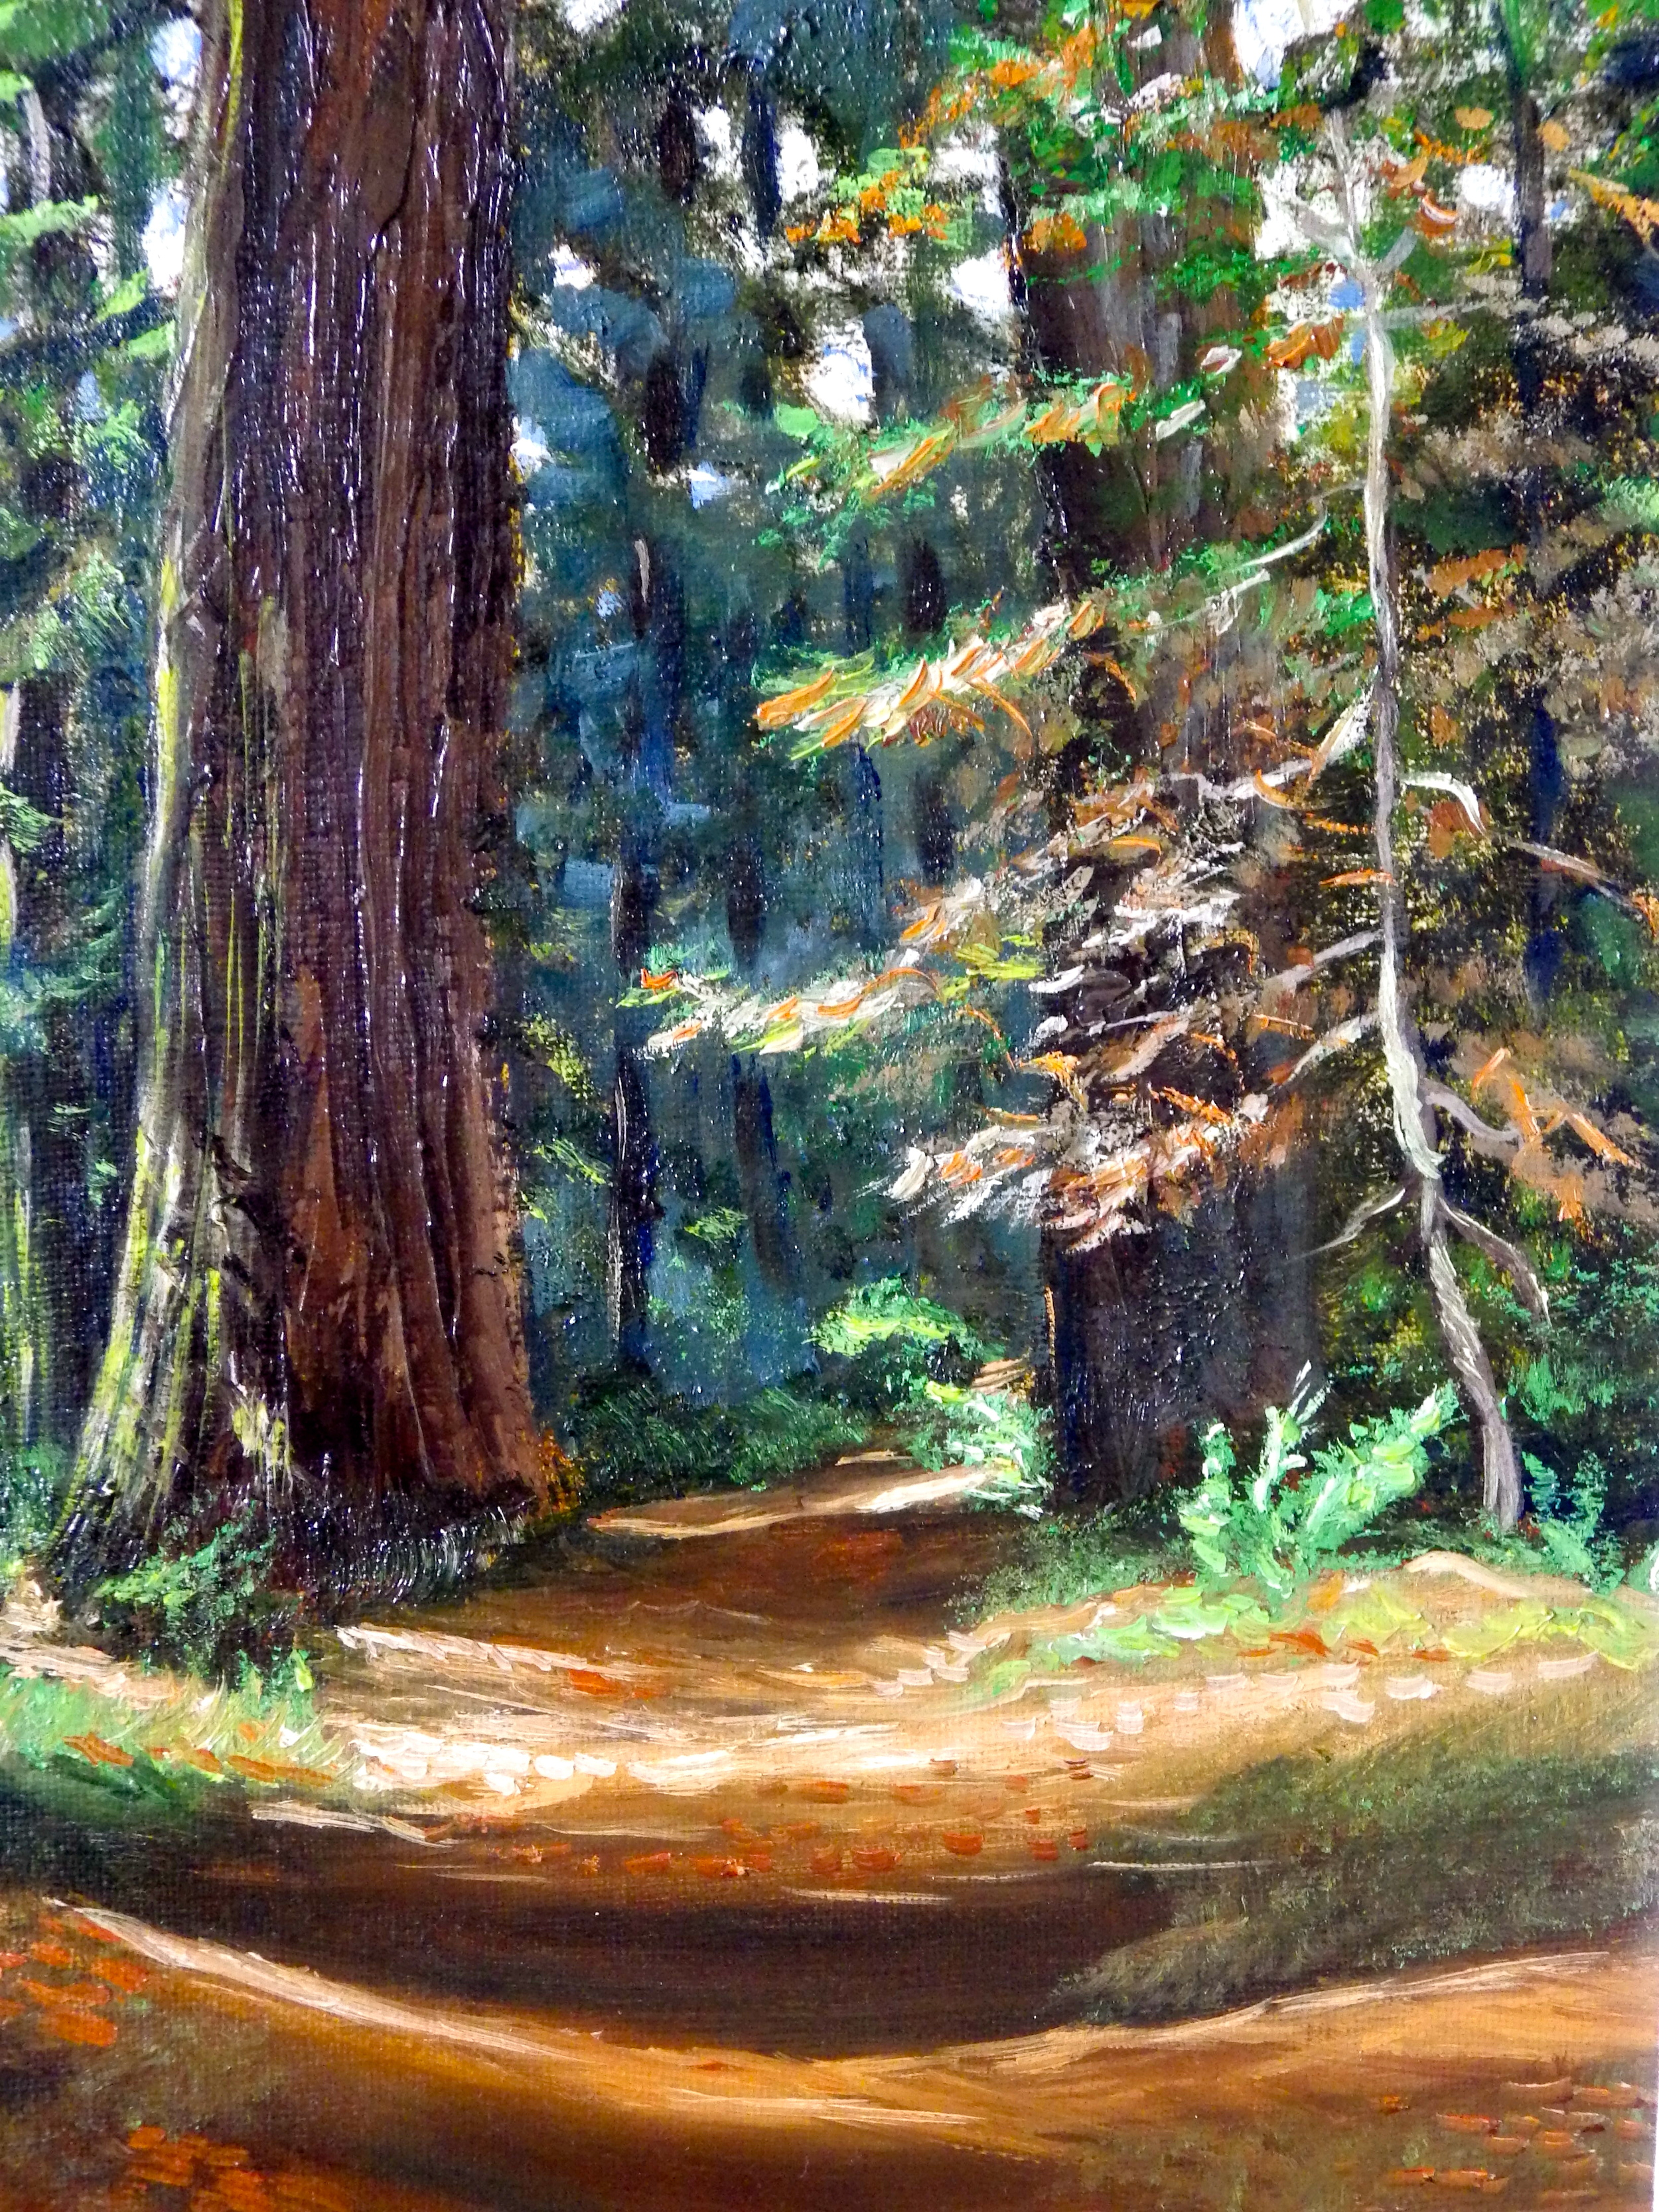 California Redwoods - Private Collection